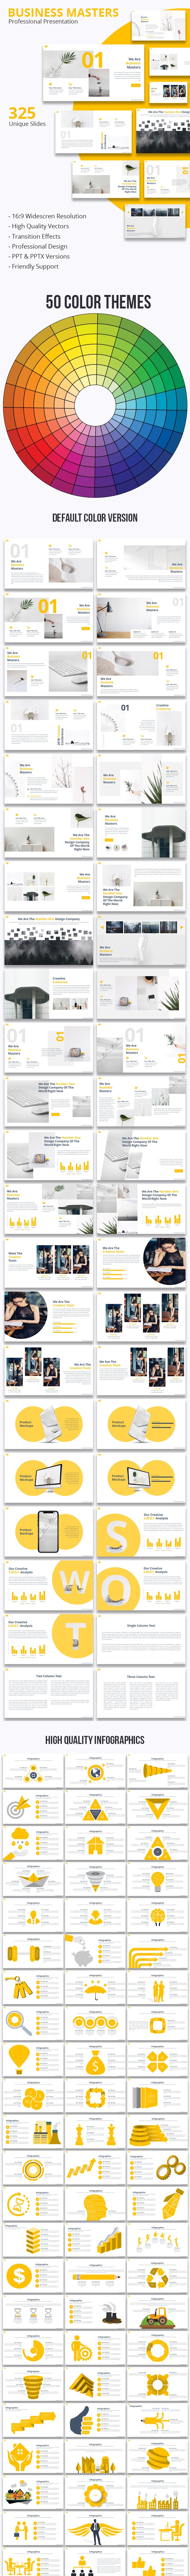 Business Masters - Multipurpose Powerpoint Presentation - Business PowerPoint Templates